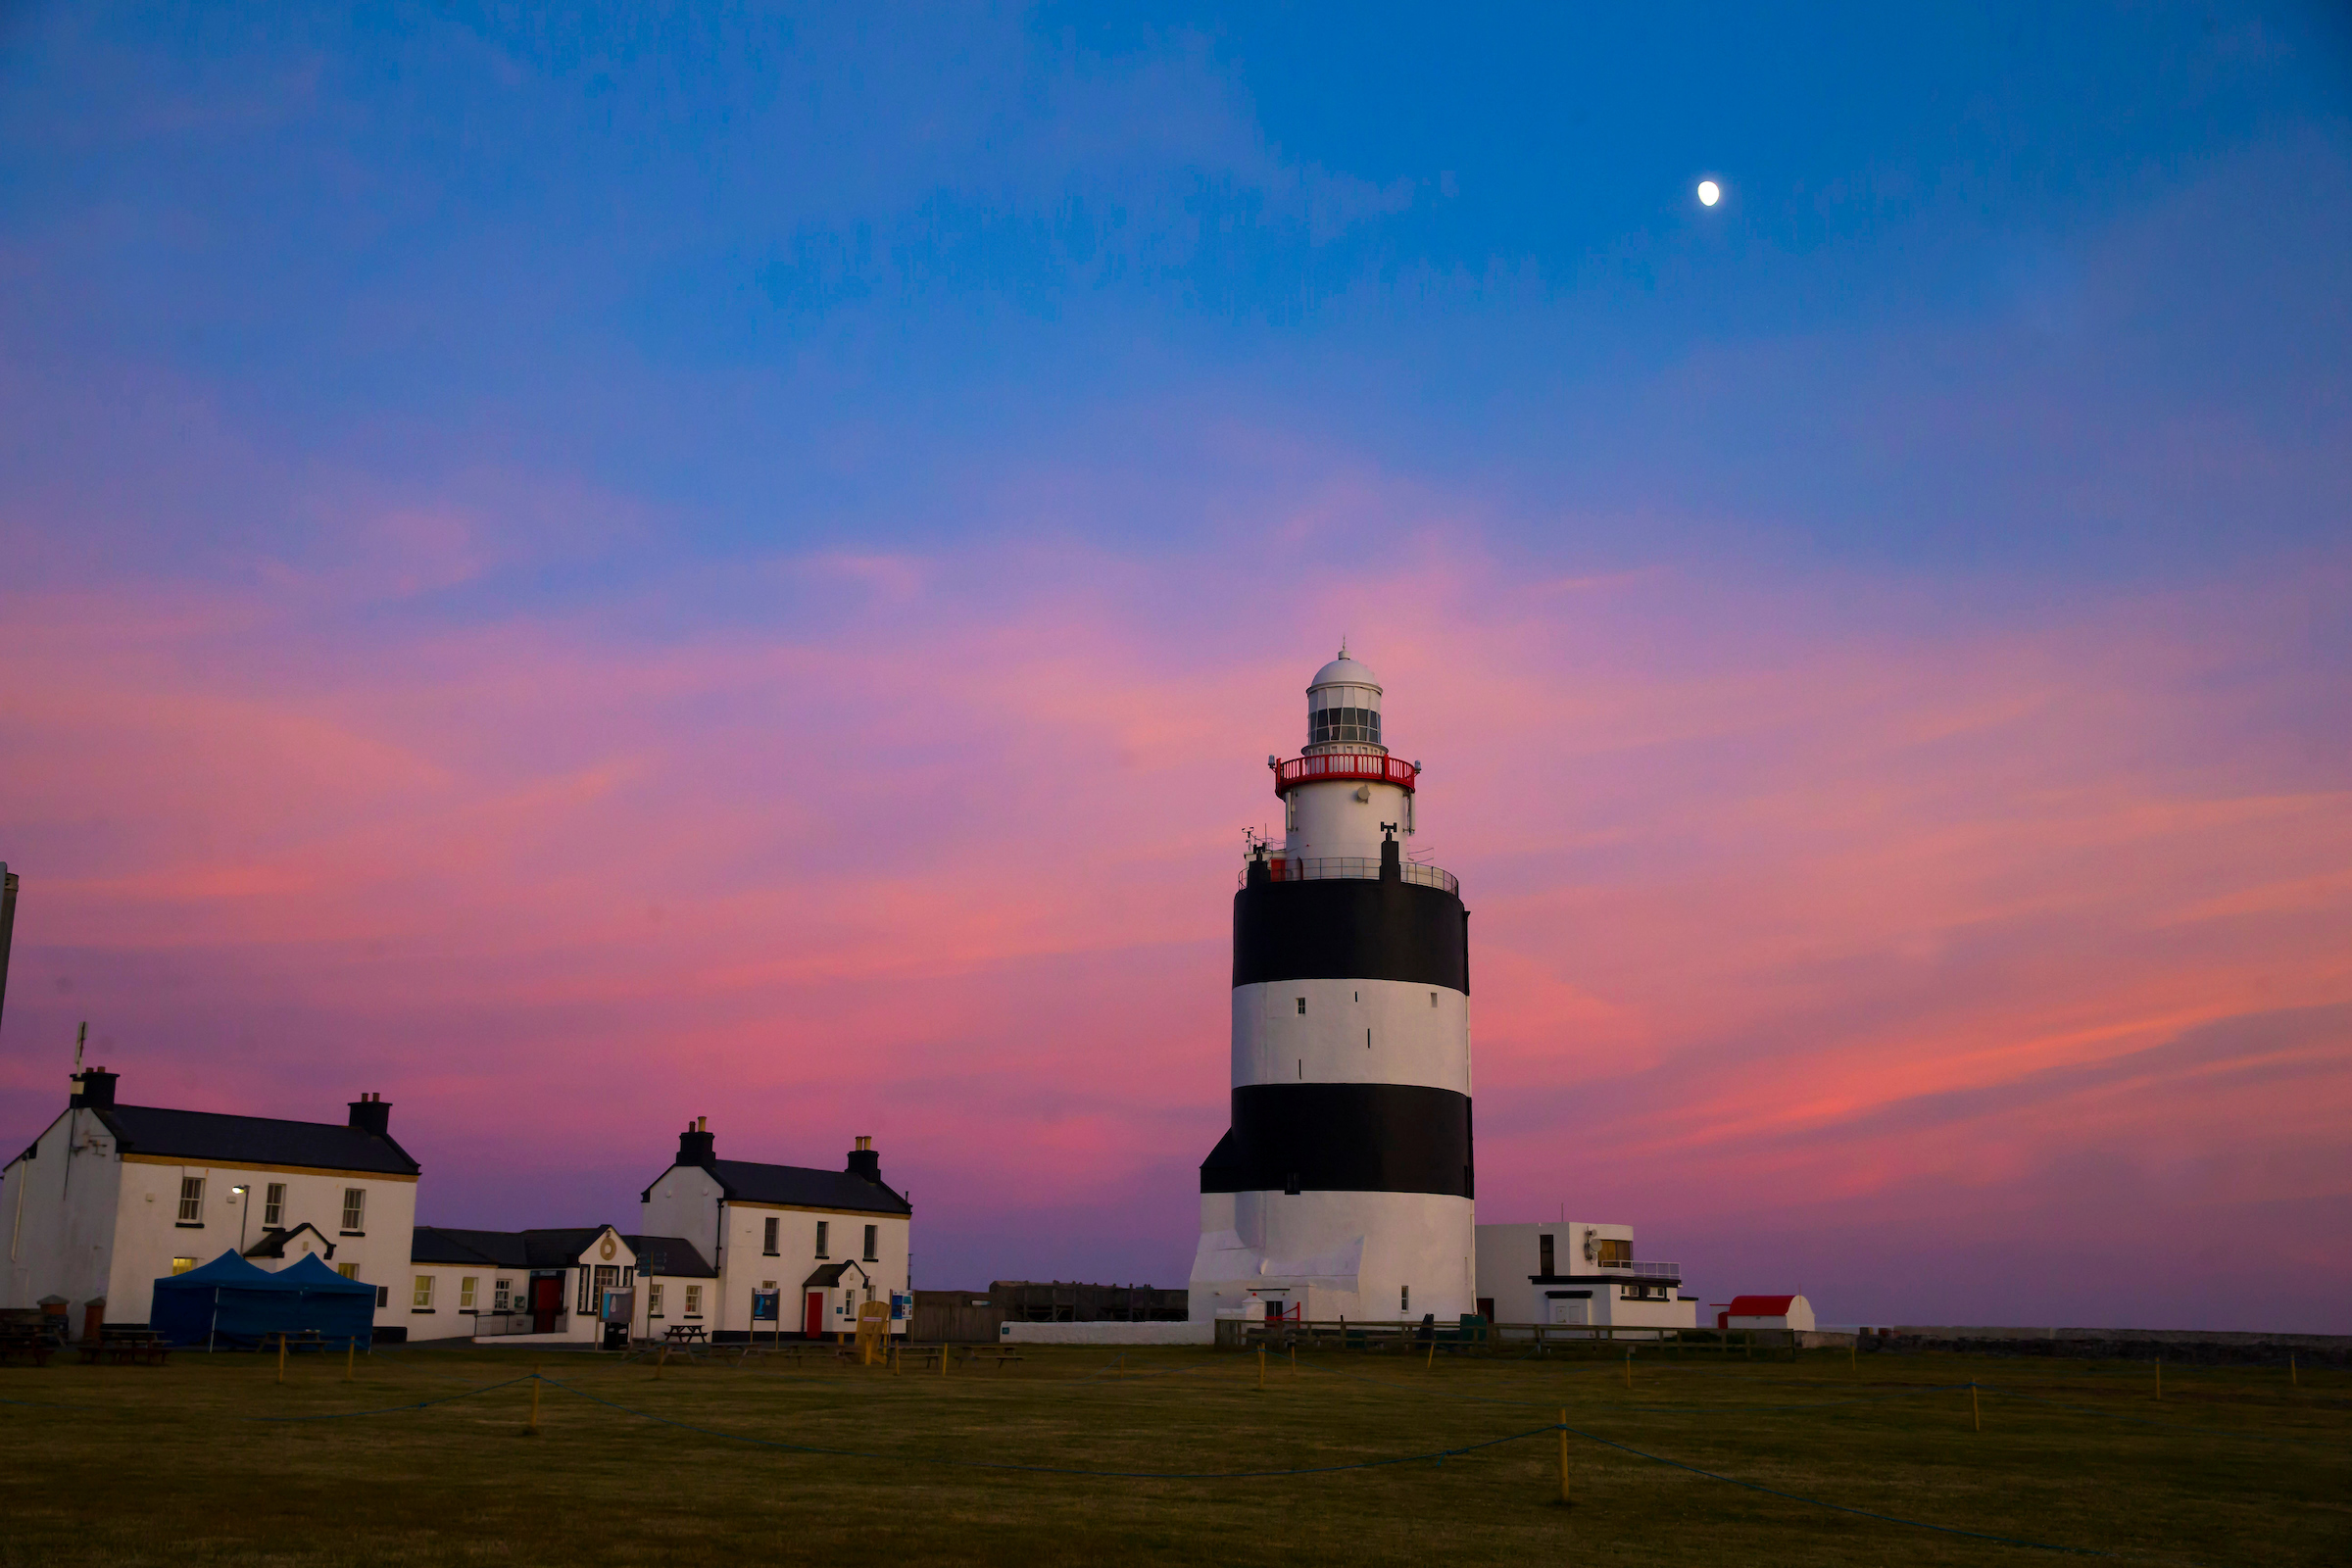 sunset at Hook Lighthouse